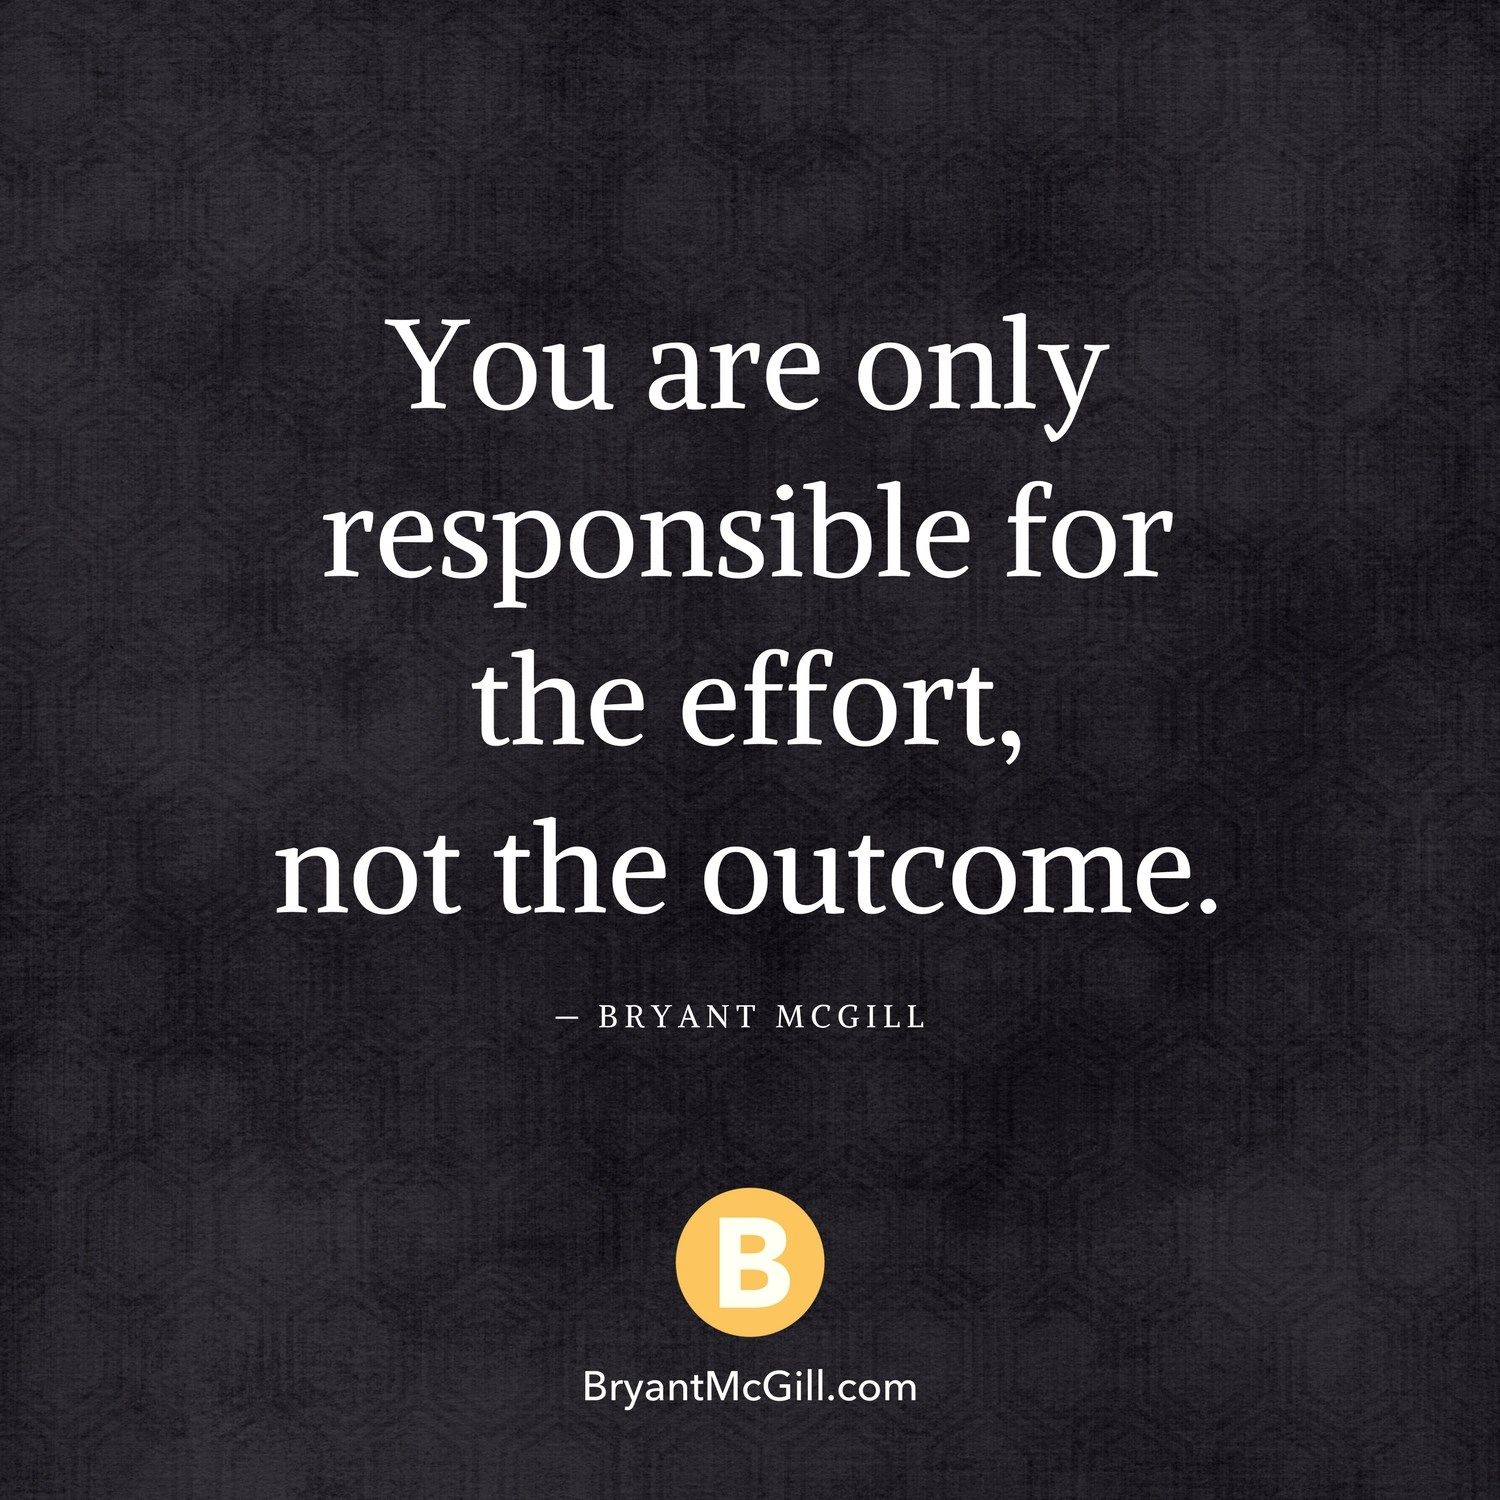 You Are Only Responsible For The Effort Not The Outcome Bryant Mcgill Effort Quotes Health Quotes Motivation Responsibility Quotes